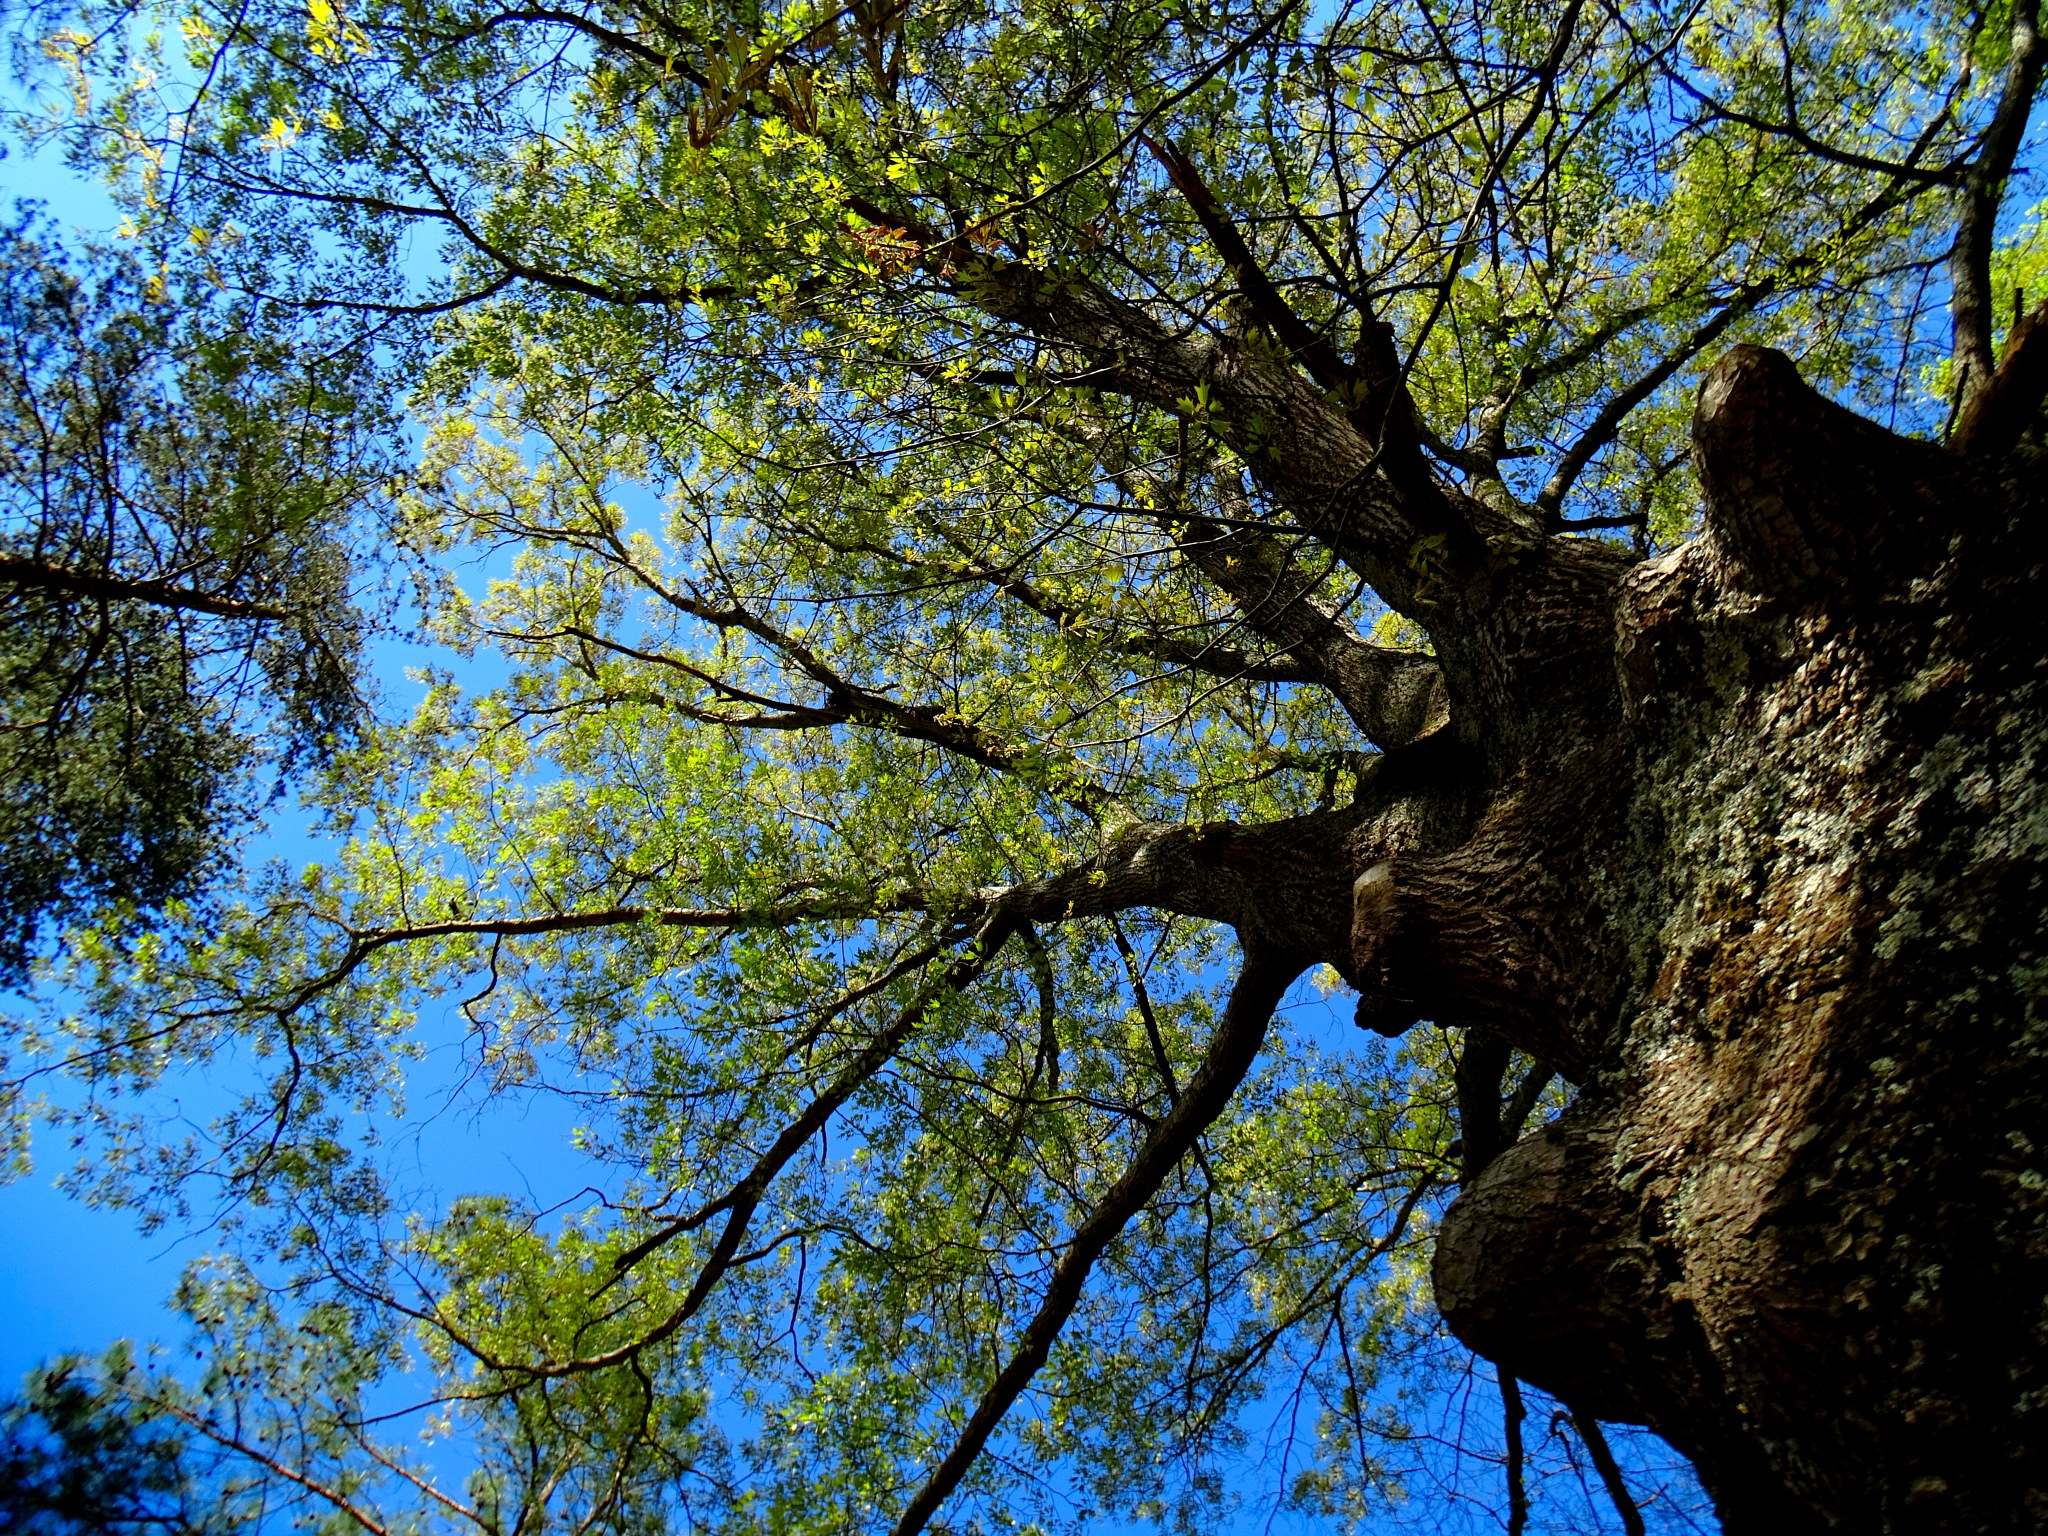 Trees come back to life by Patty Stockton